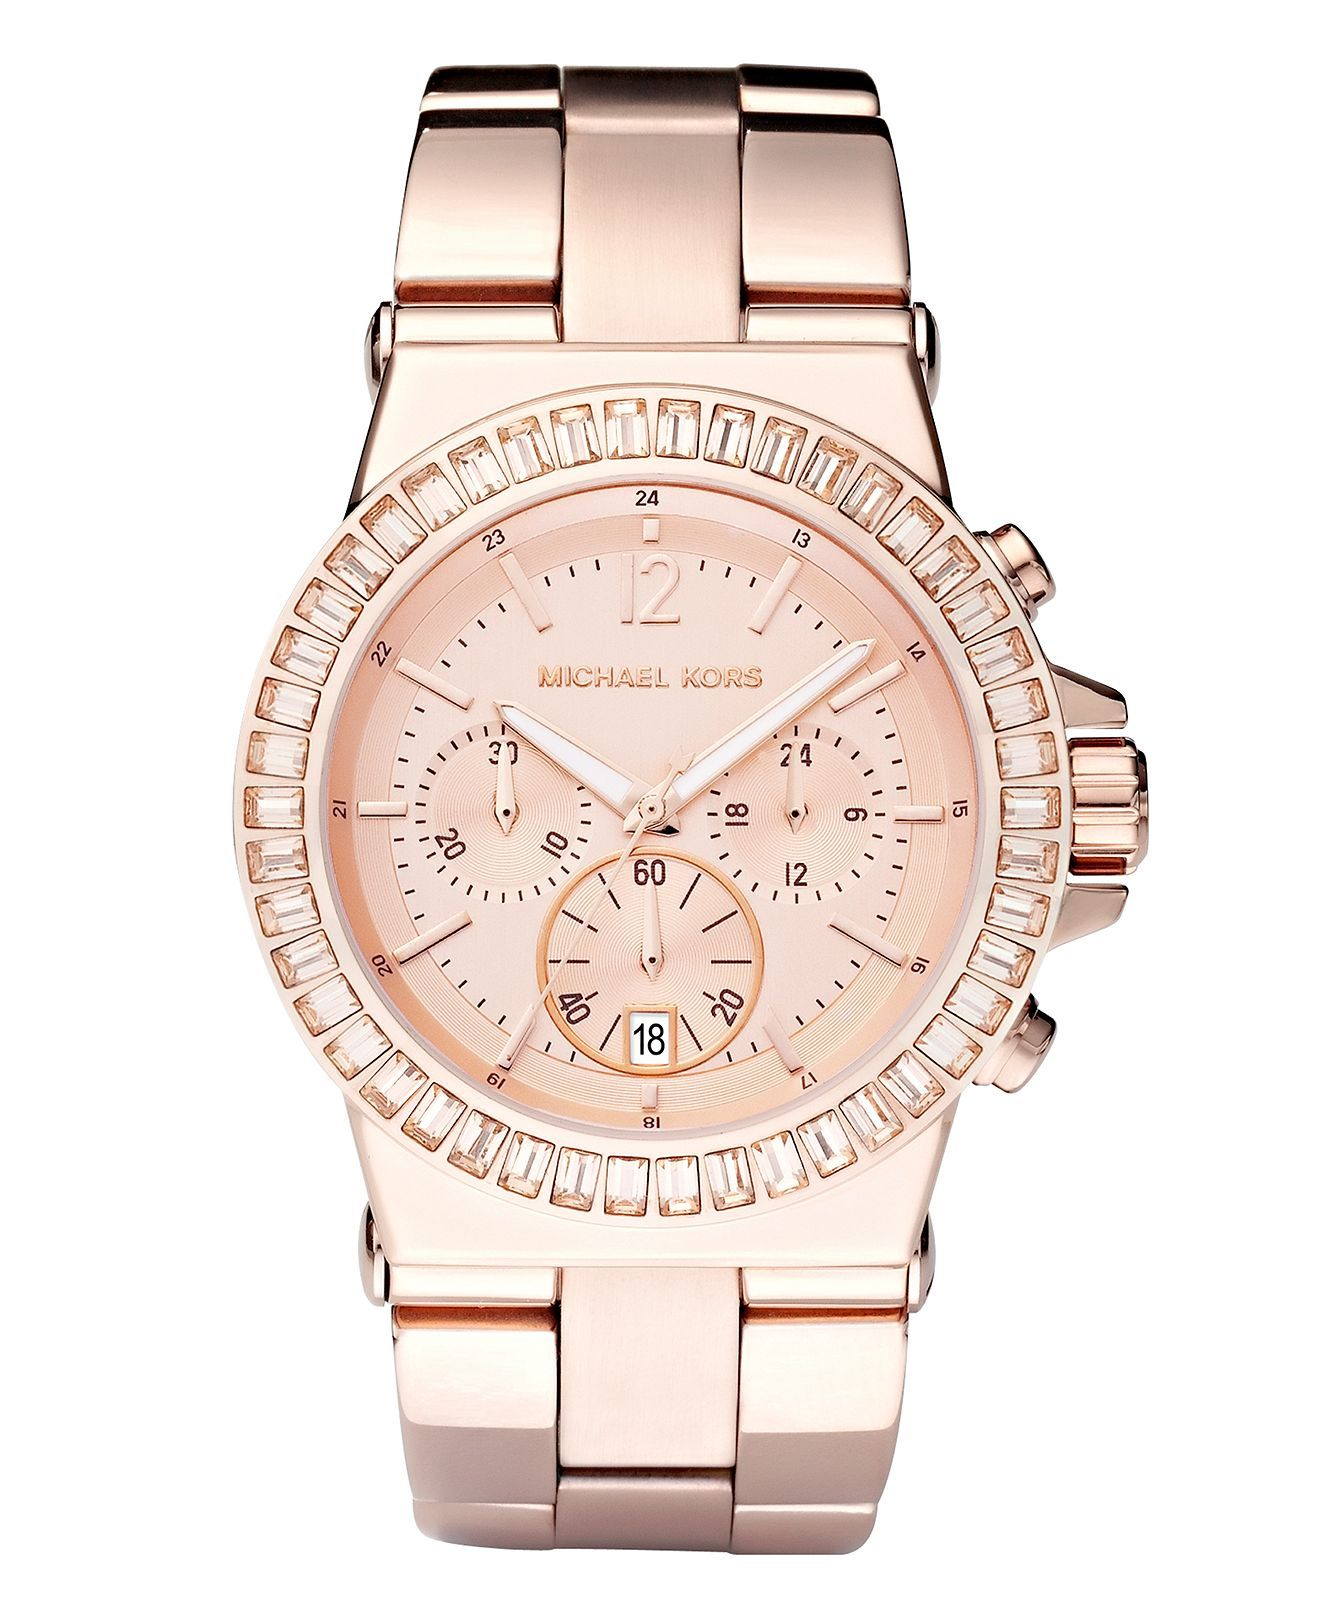 2f83d26ae80 Michael Kors Women s Chronograph Dylan Rose Gold-Tone Stainless Steel  Bracelet Watch 43mm MK5412 - Watches - Jewelry   Watches - Macy s